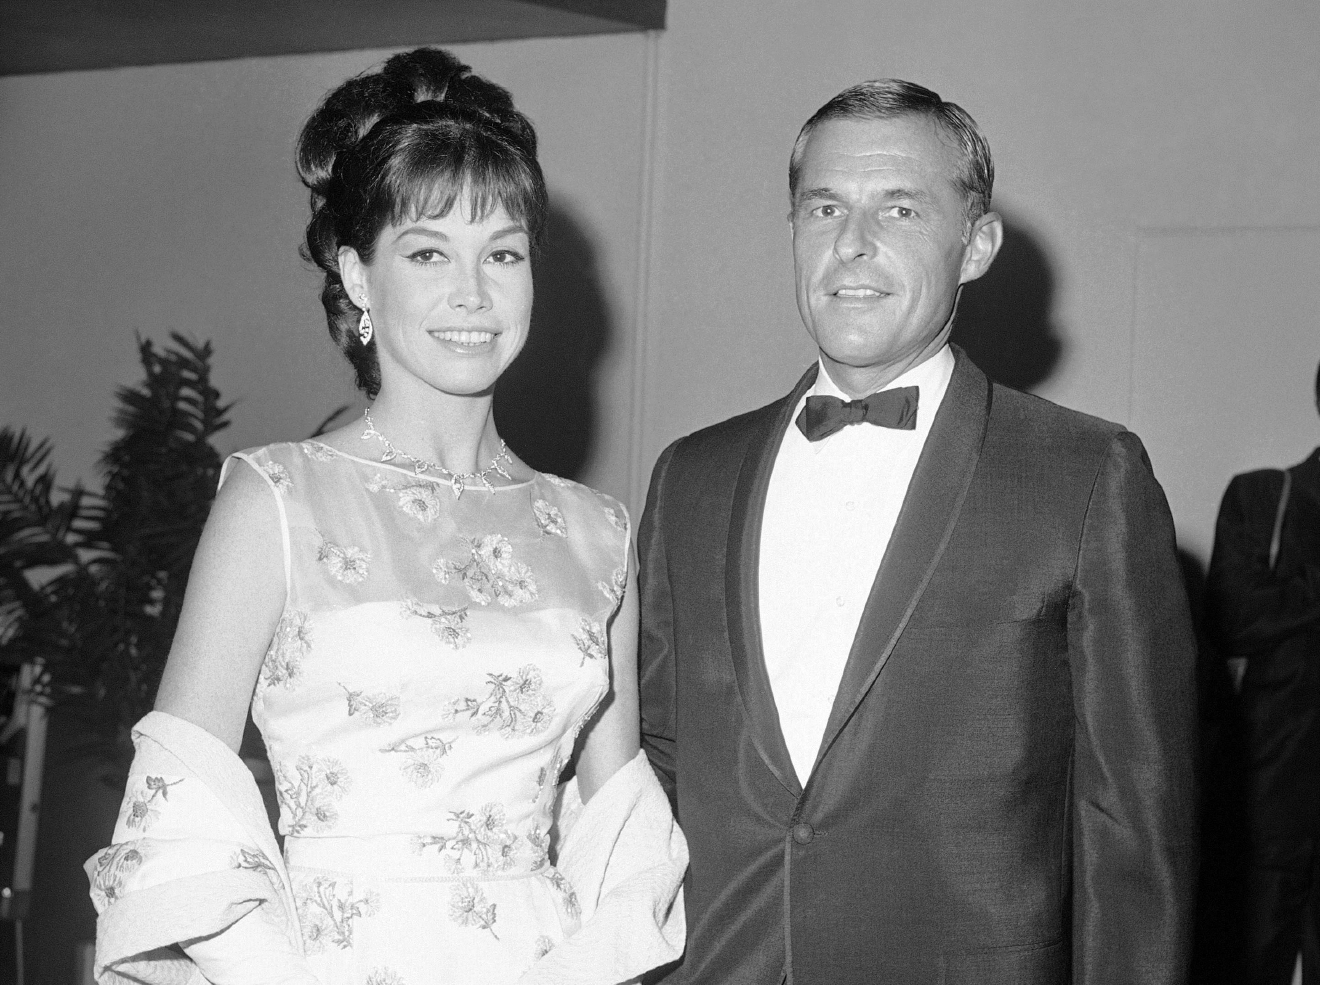 Mary Tyler Moore and husband Grant Tinker arriving for Emmy Awards, May 22, 1966 in Hollywood, Los Angles. (AP Photo/DFS/HPM)